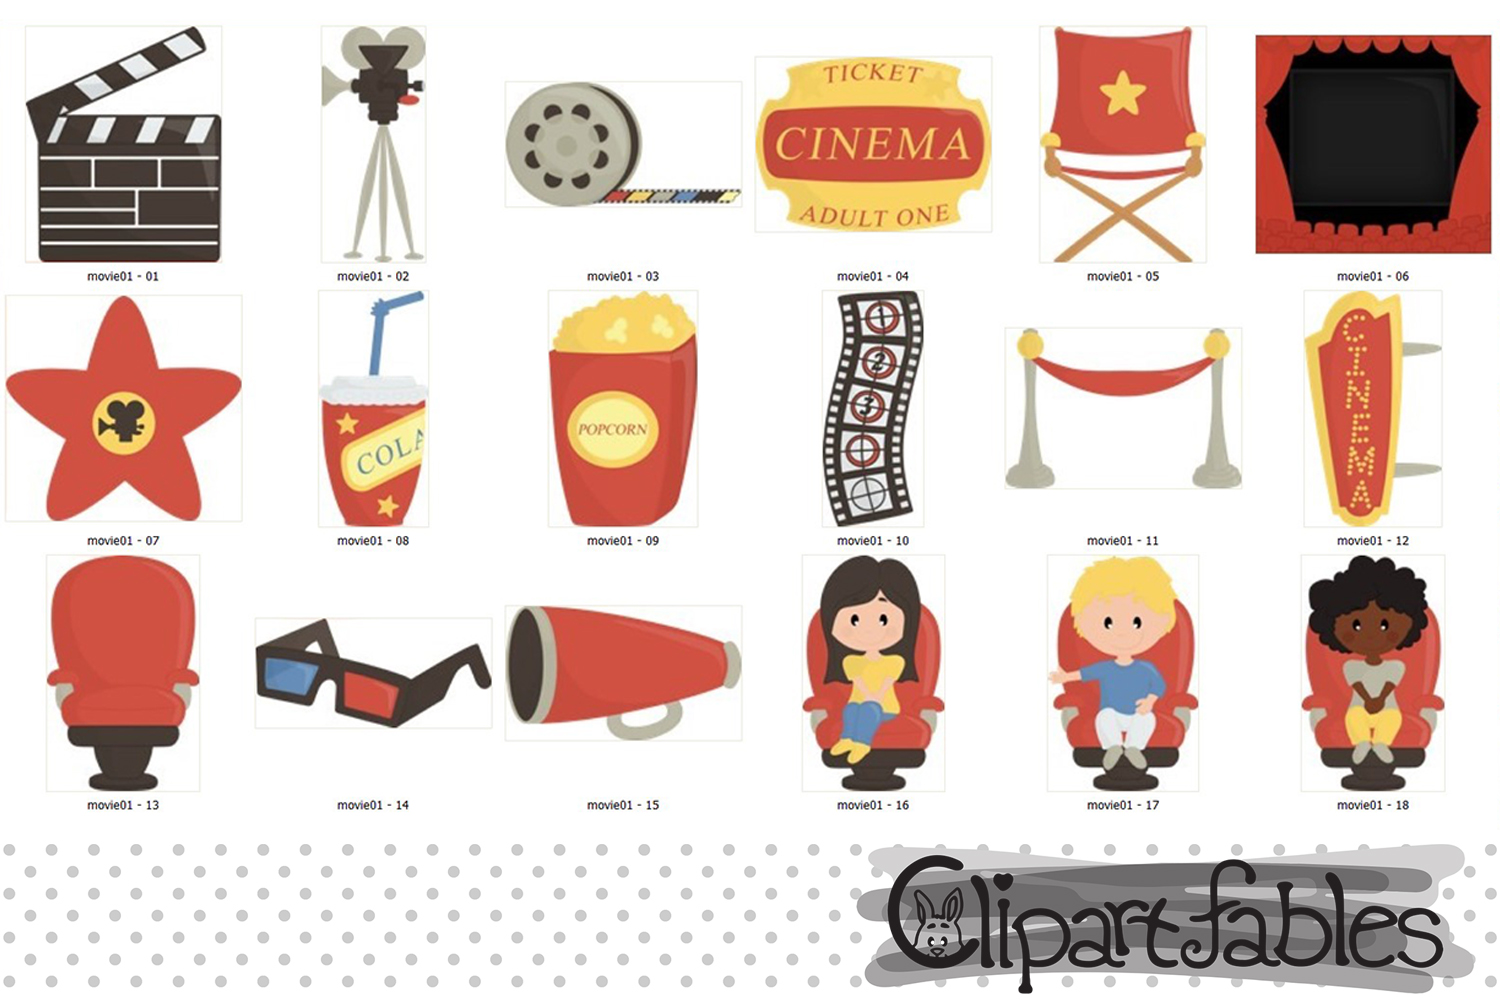 MOVIE clipart, Cinema clip art, Movie party example image 2